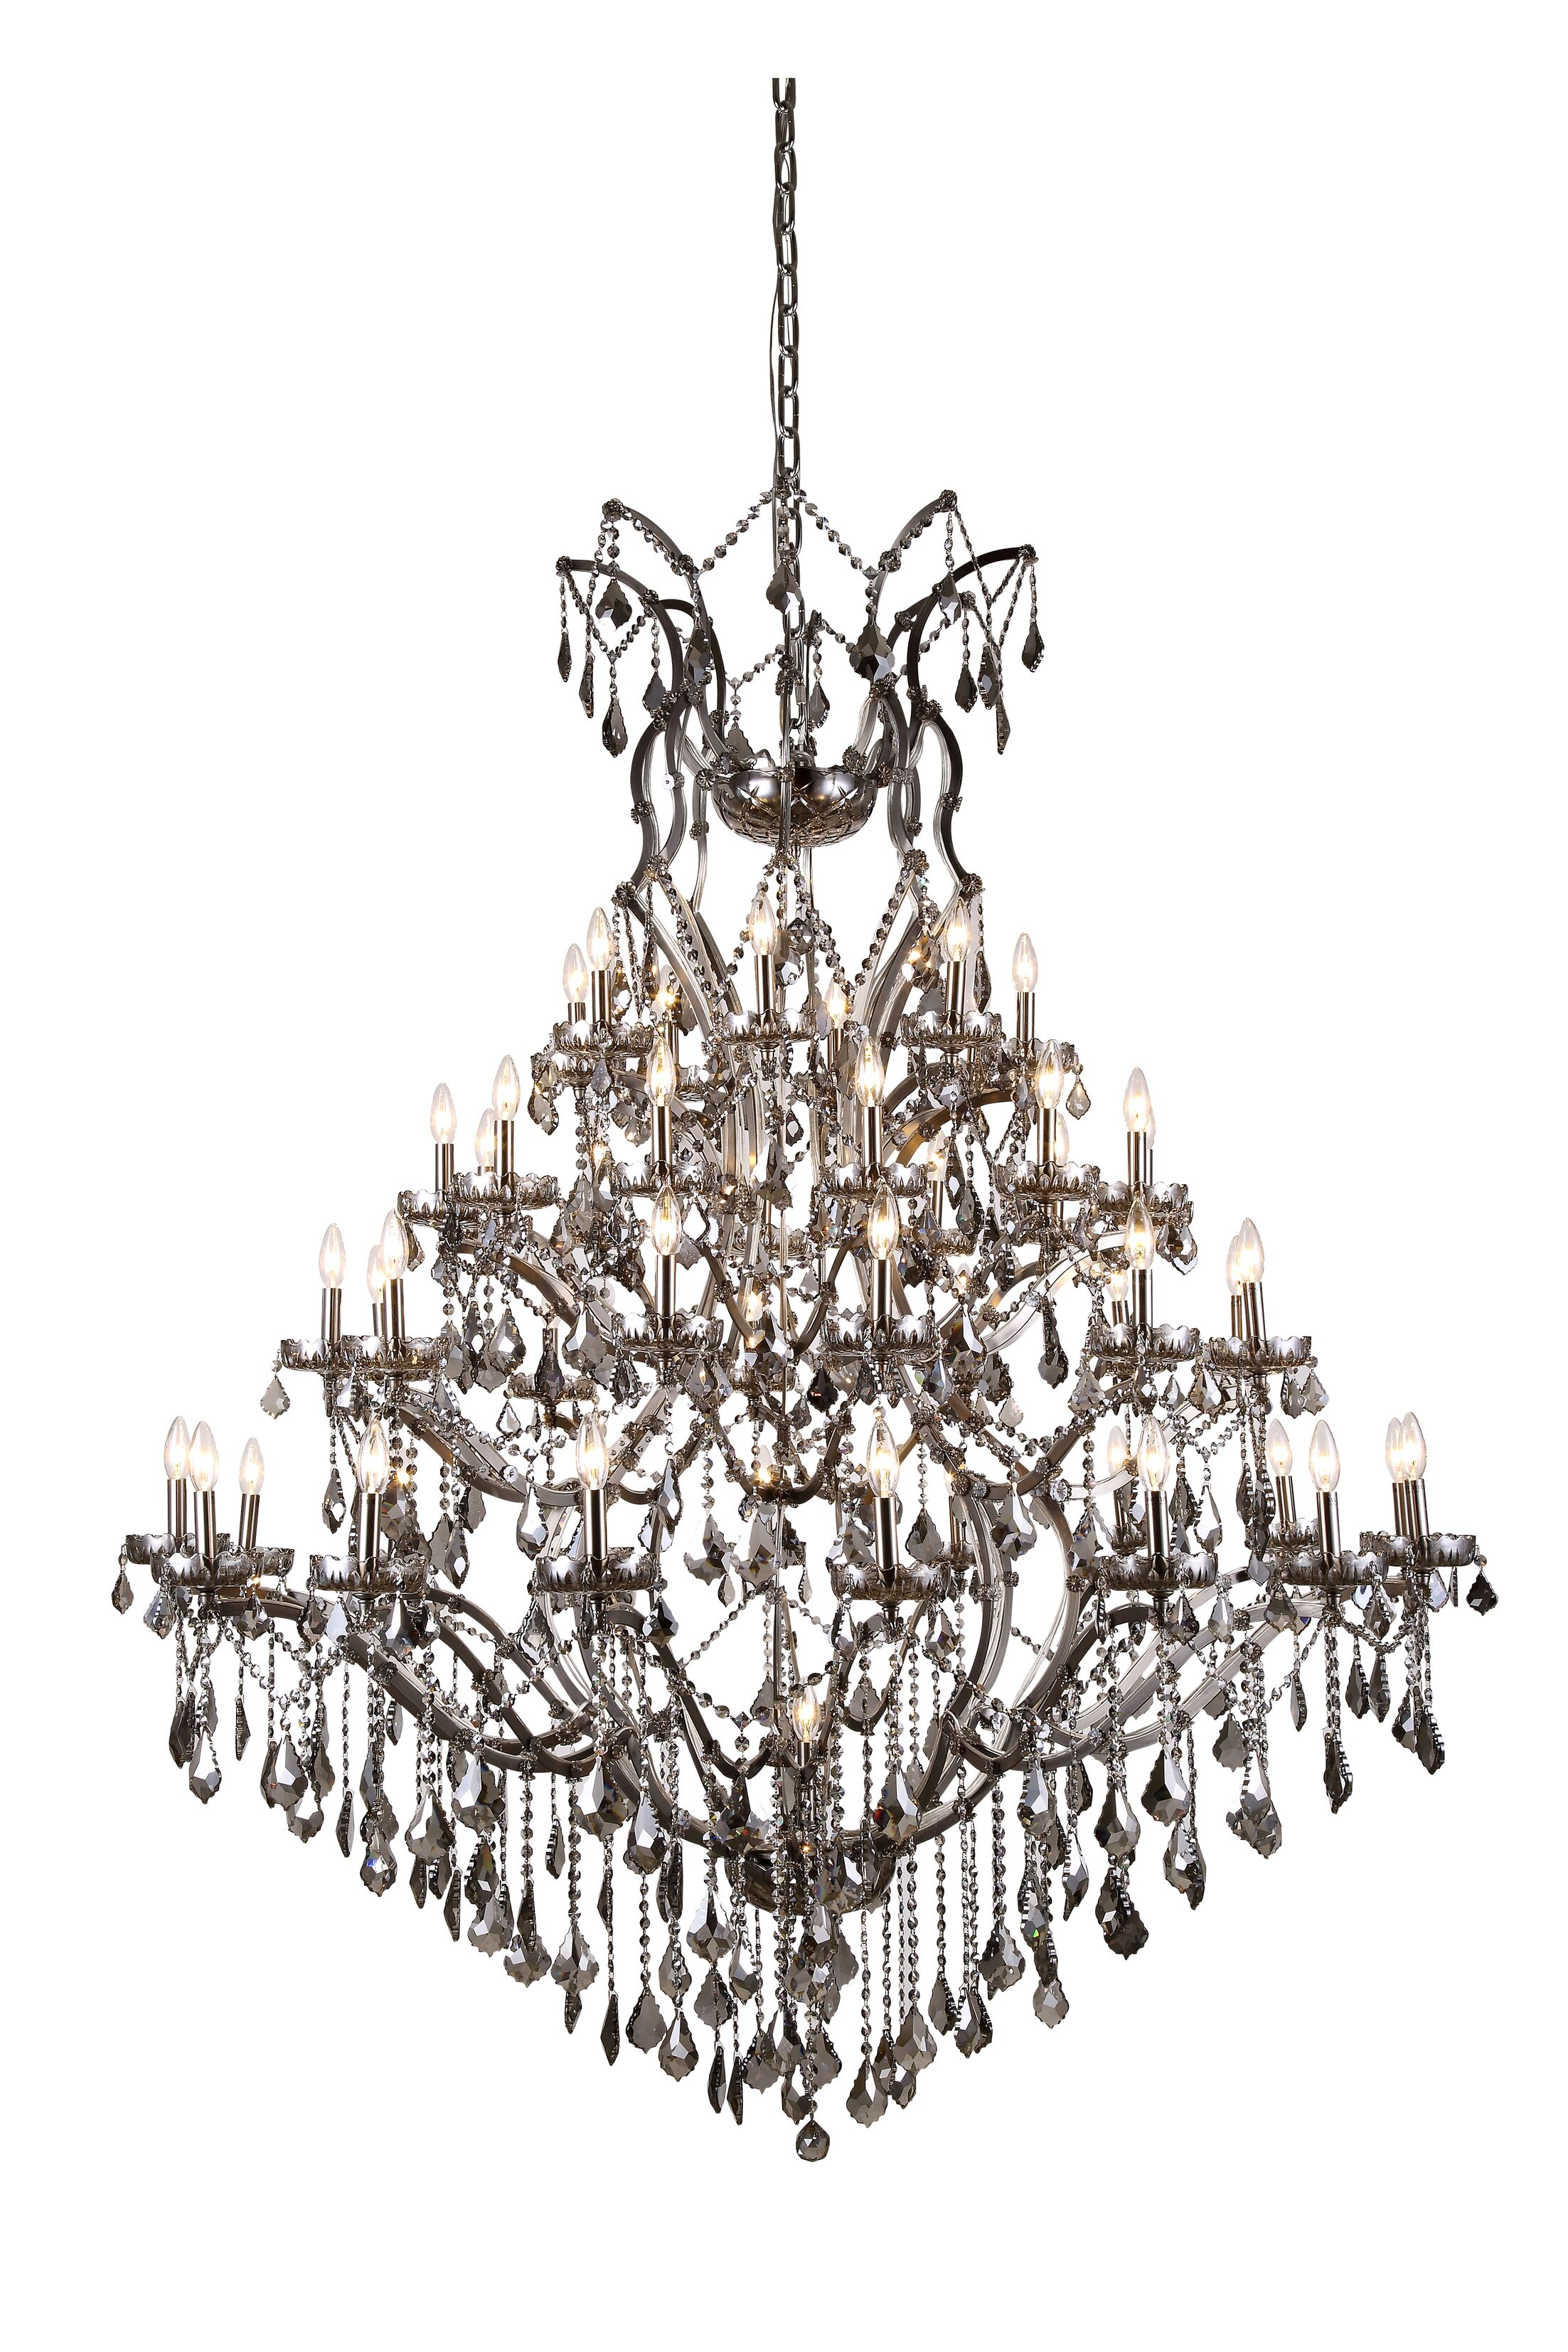 Newell 49-Light Candle Style Chandelier Finish: Polished Nickel, Shade Color: Grey